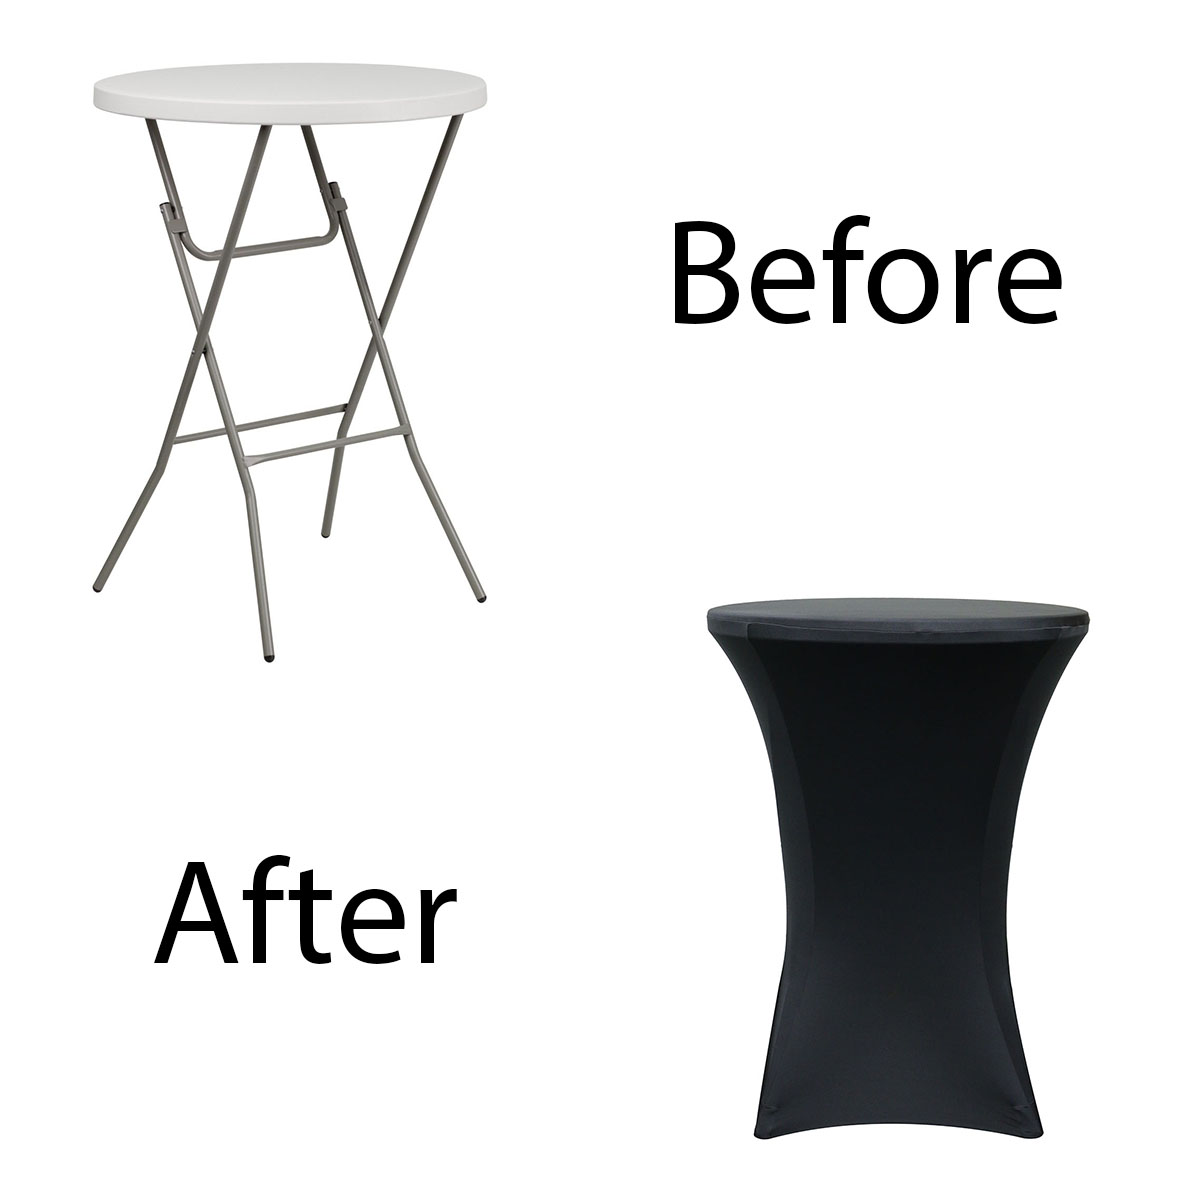 32-inch-highboy-cocktail-spandex-table-covers-black-before-after.jpg